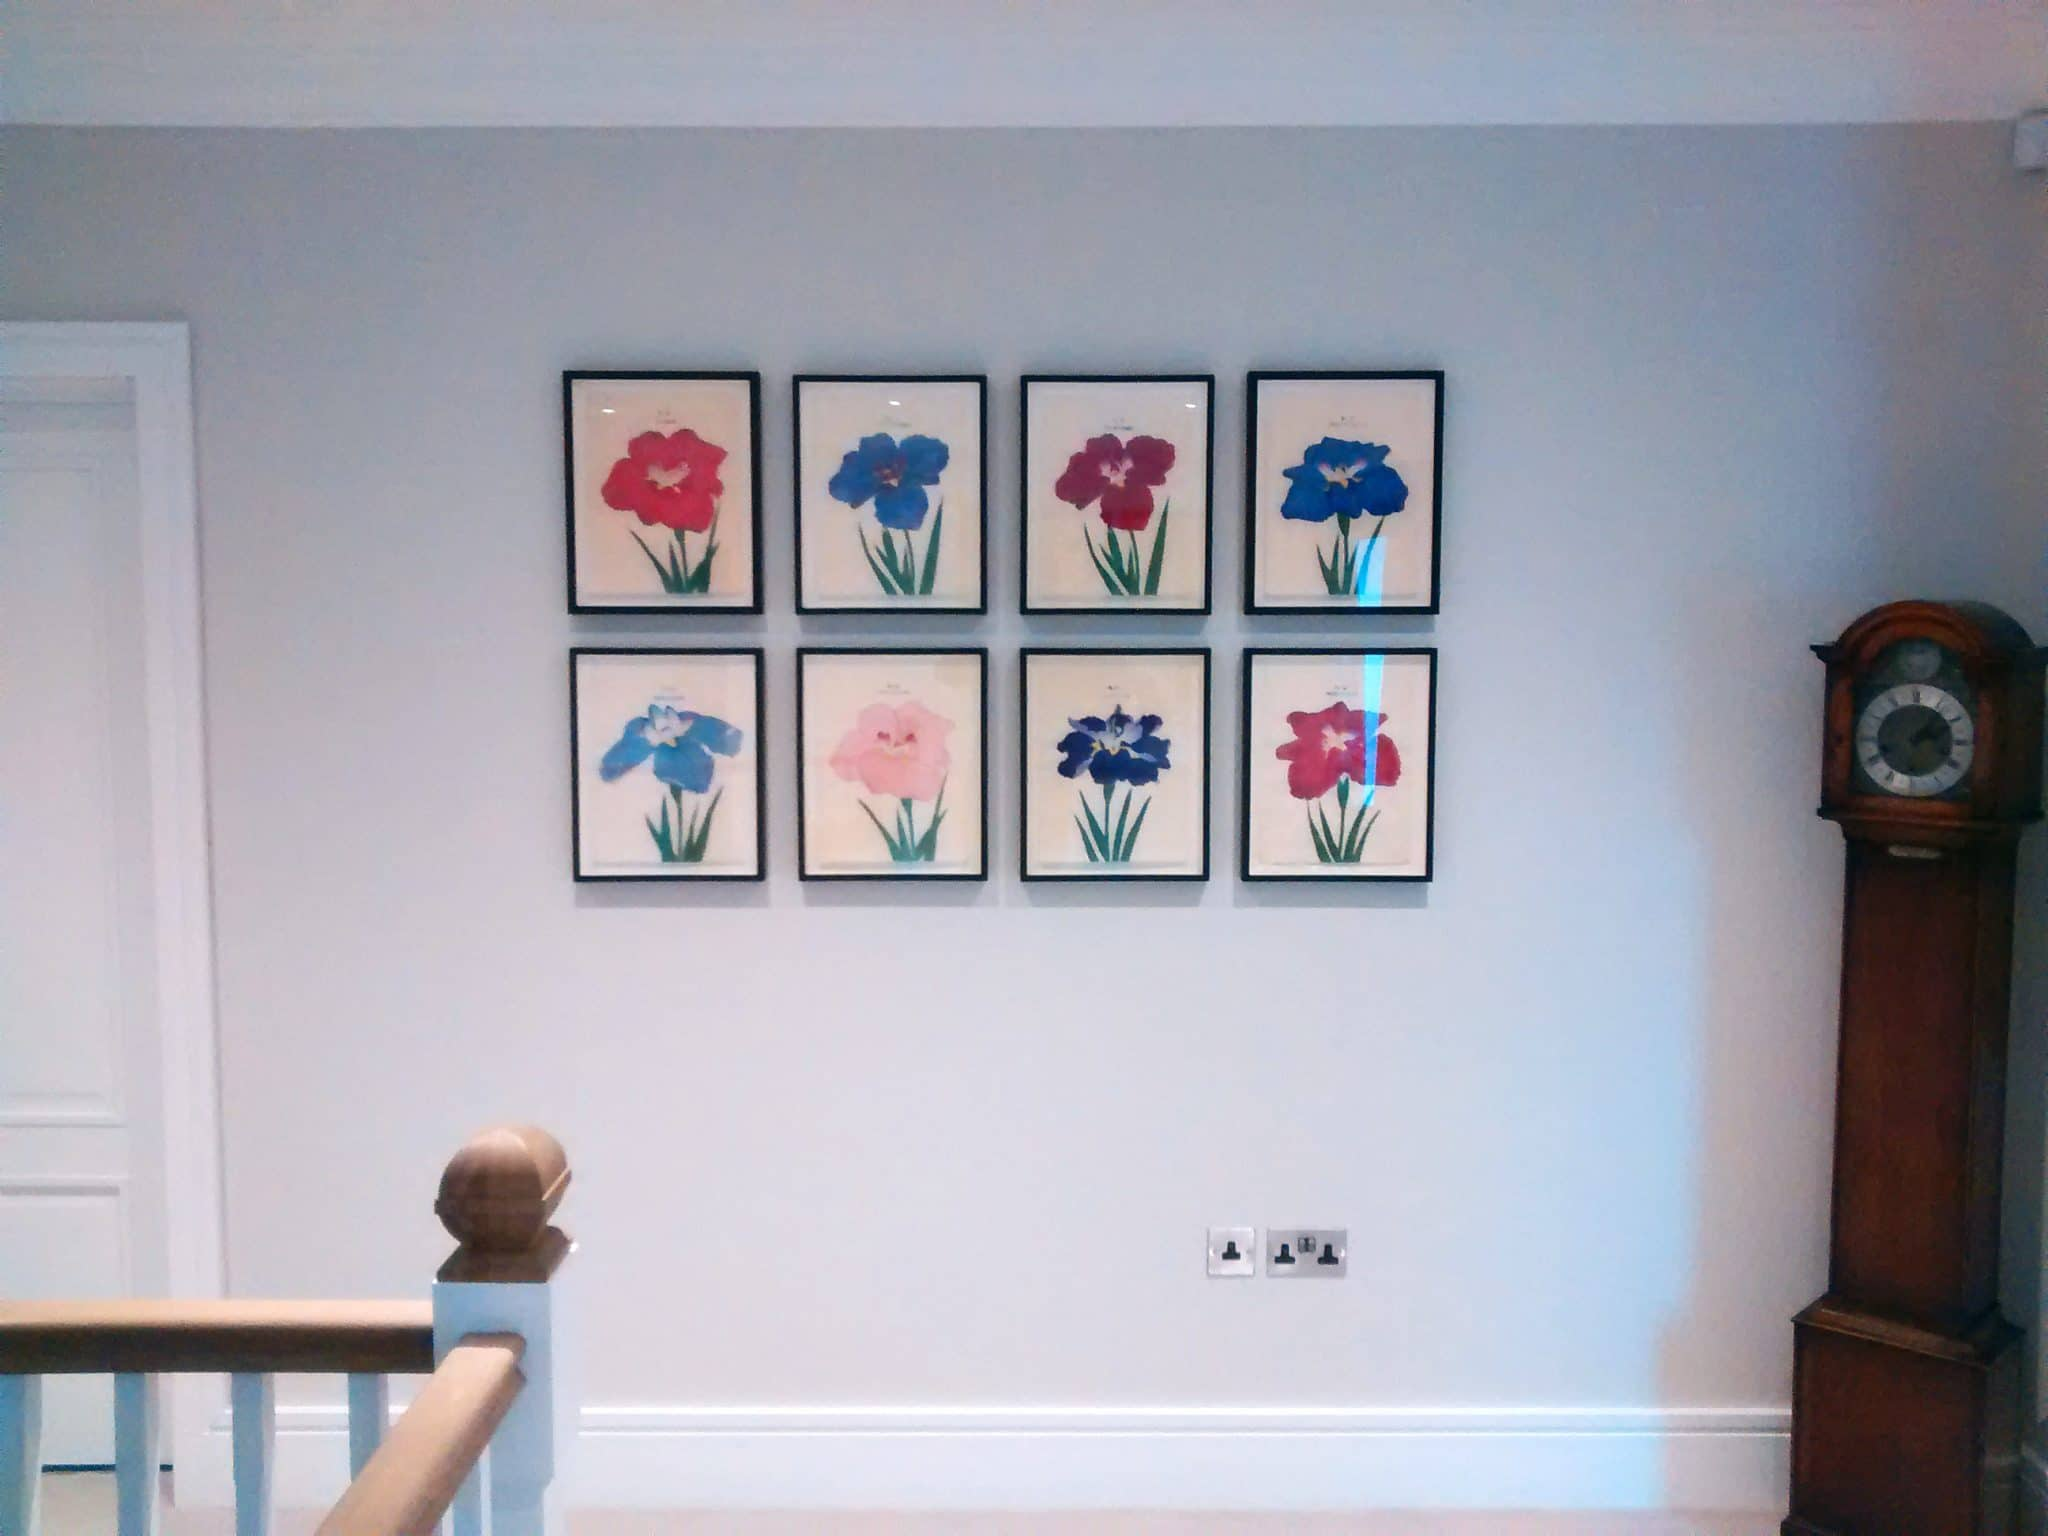 Arranging photos on a wall - Picture Wall Ideas Eight Japanese Flower Pictures Hung In A Grid Formation